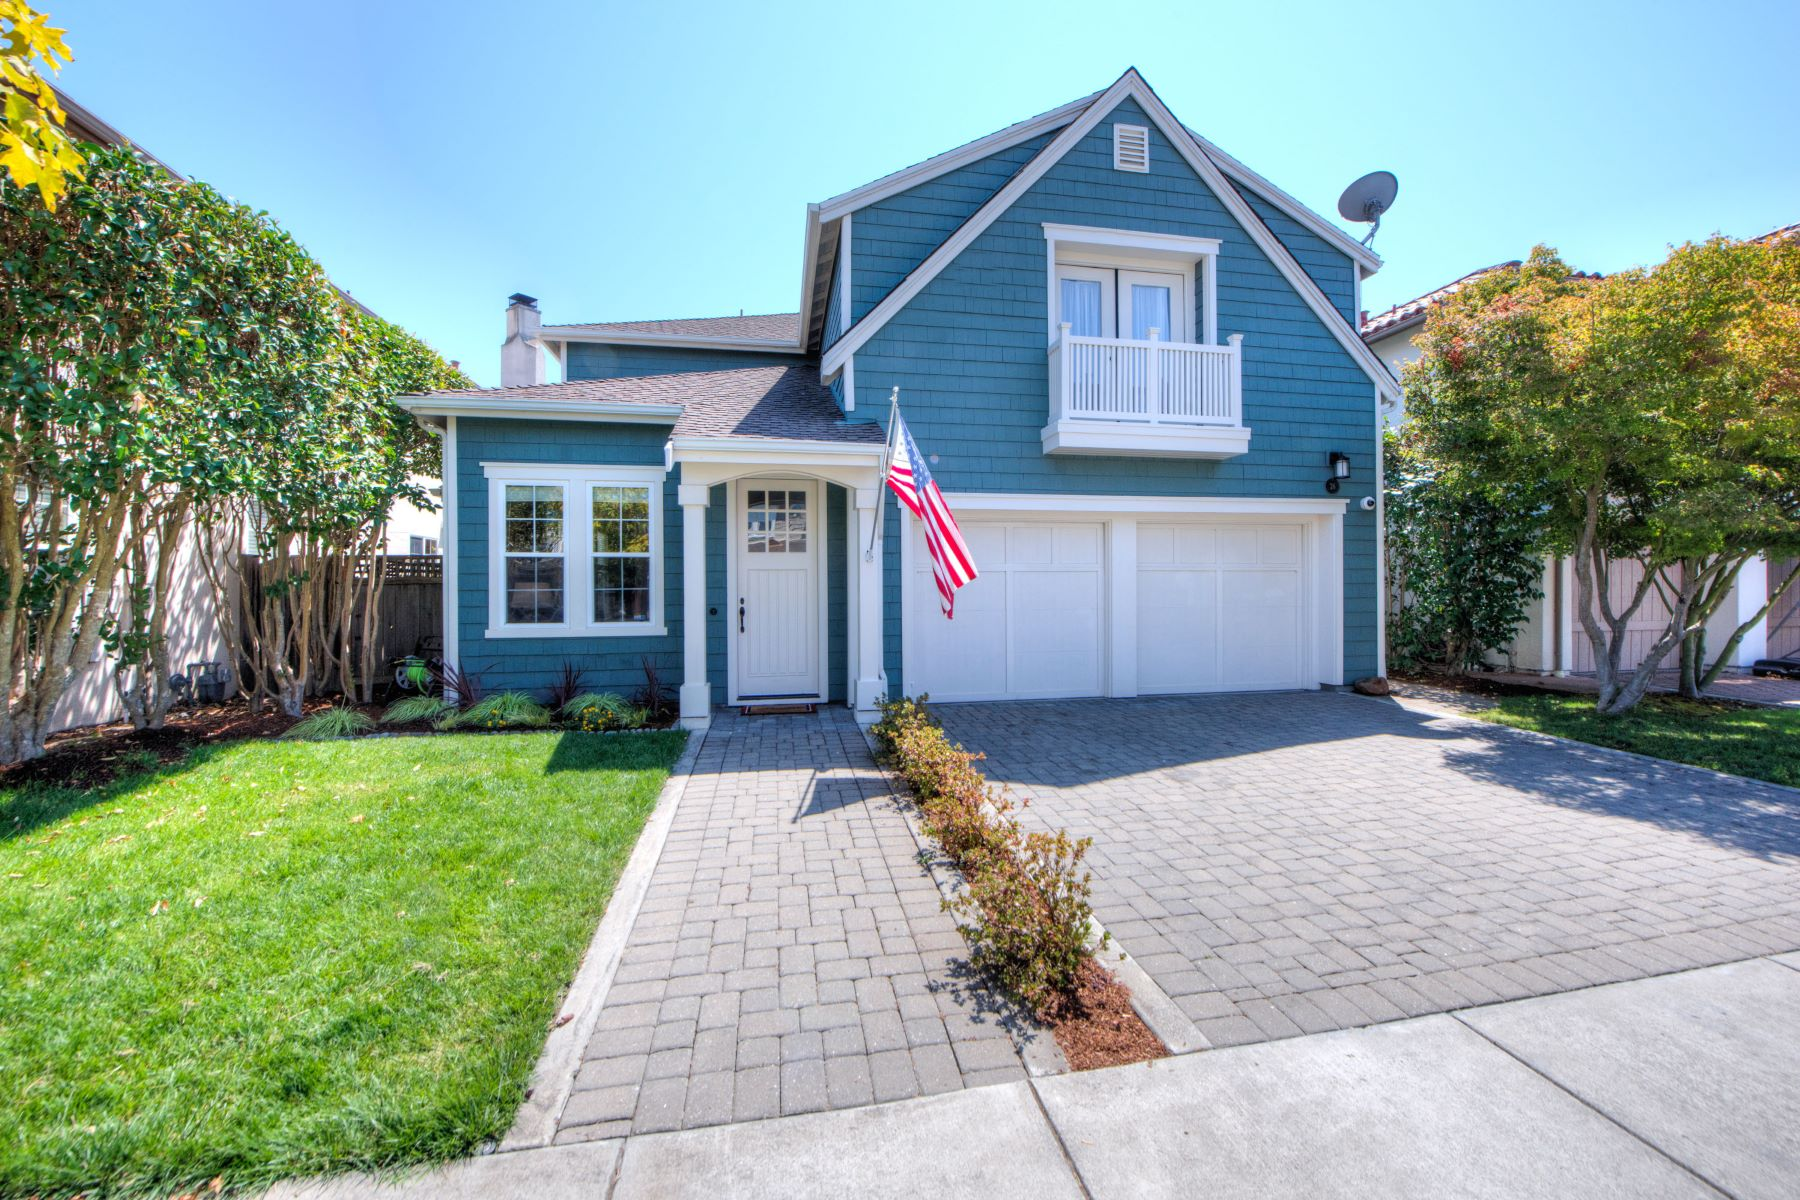 Single Family Home for Sale at Coastal Charm with 5 Bedrooms! 26 Woodbridge Way Novato, California 94949 United States